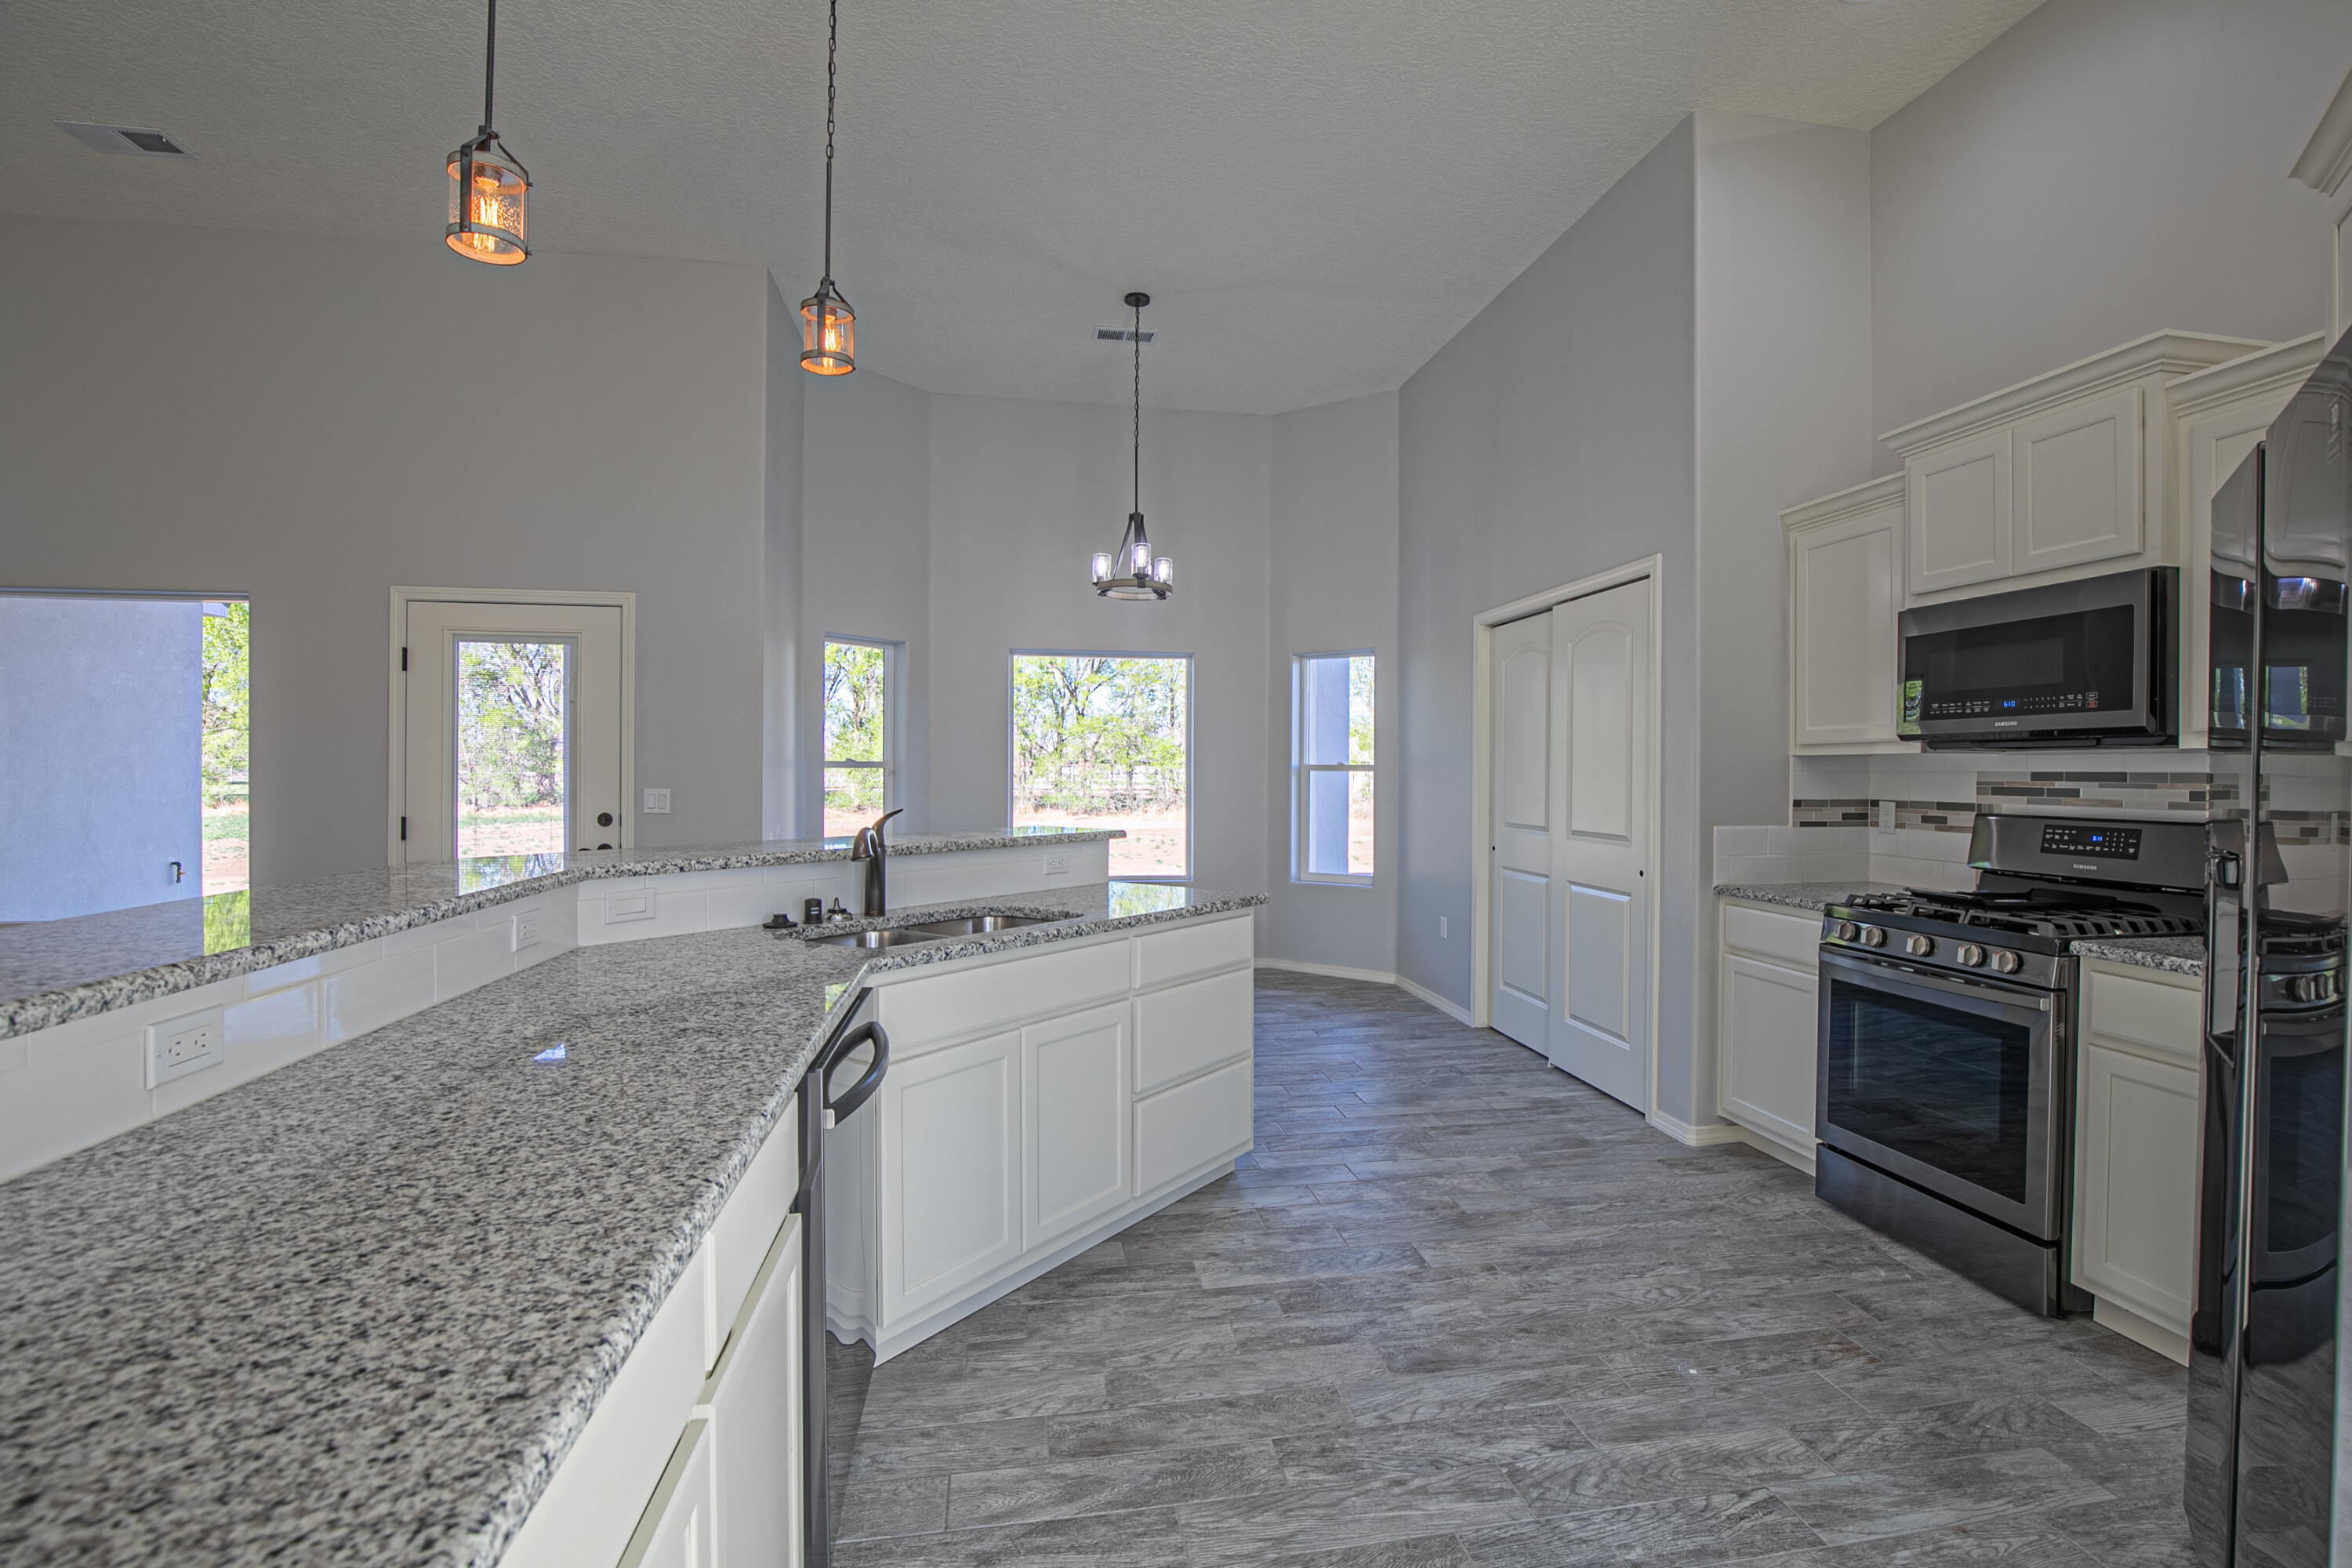 Welcome to this exquisite custom home (Montana) situated on 1.88 acres of beautiful valley land. This home features master suite with large walk in closet, separate shower, & double sinks. 3 Bdrm w/office & closet so possible 4 bdrm. The kitchen is complete with an abundance of custom cabinets, including island, a sizable pantry & Stainless/black appliances, granite counters tops throughout. The open living room leads out to the back covered patio which is perfect for entertaining. This is a spec home and all features, colors and  designs have been pre-determined. Photos of same floor plan (different address)  but different colors and features may vary.